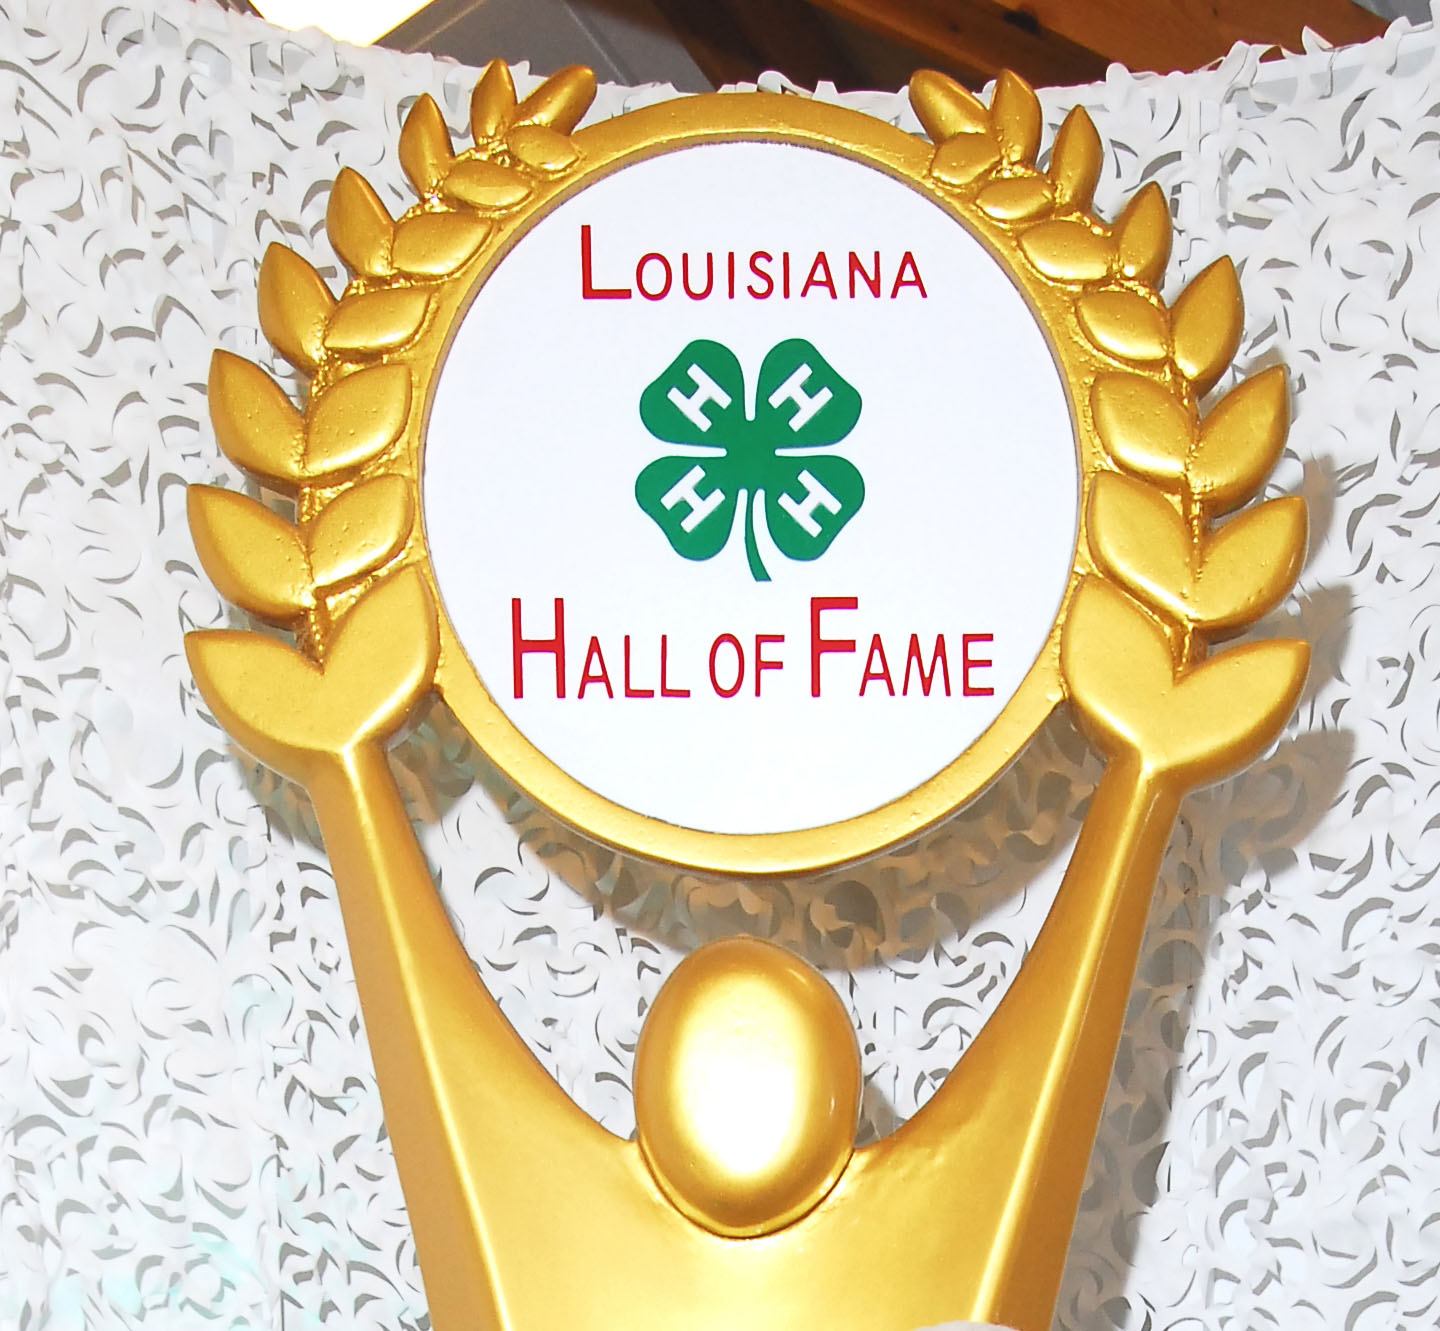 12 new members set for 4-H Hall of Fame